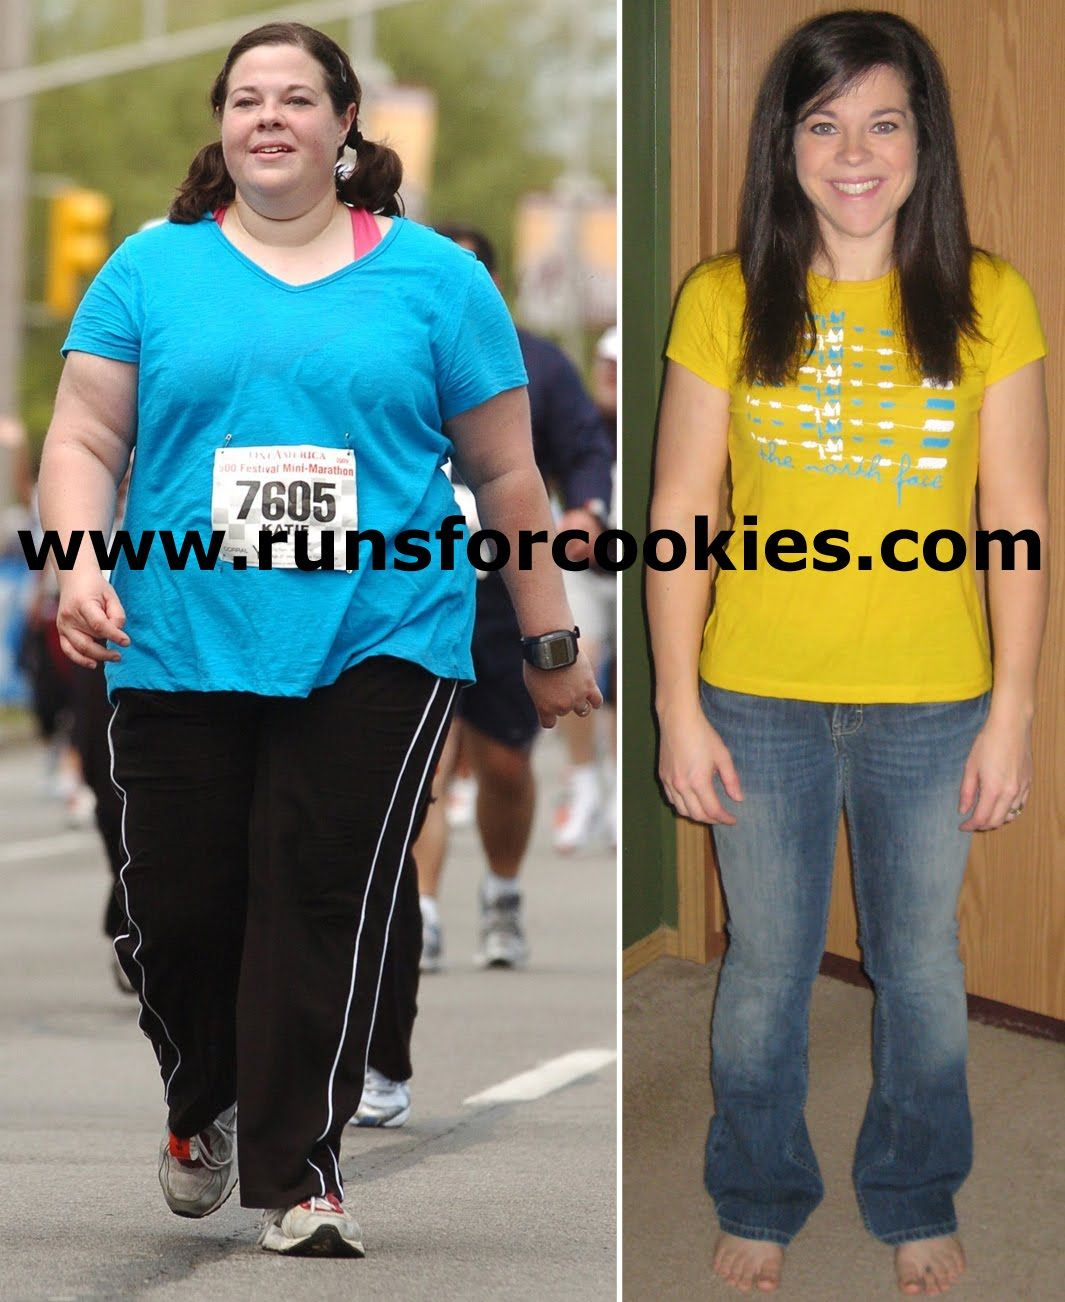 Biggest loser extreme weight loss dvd photo 3